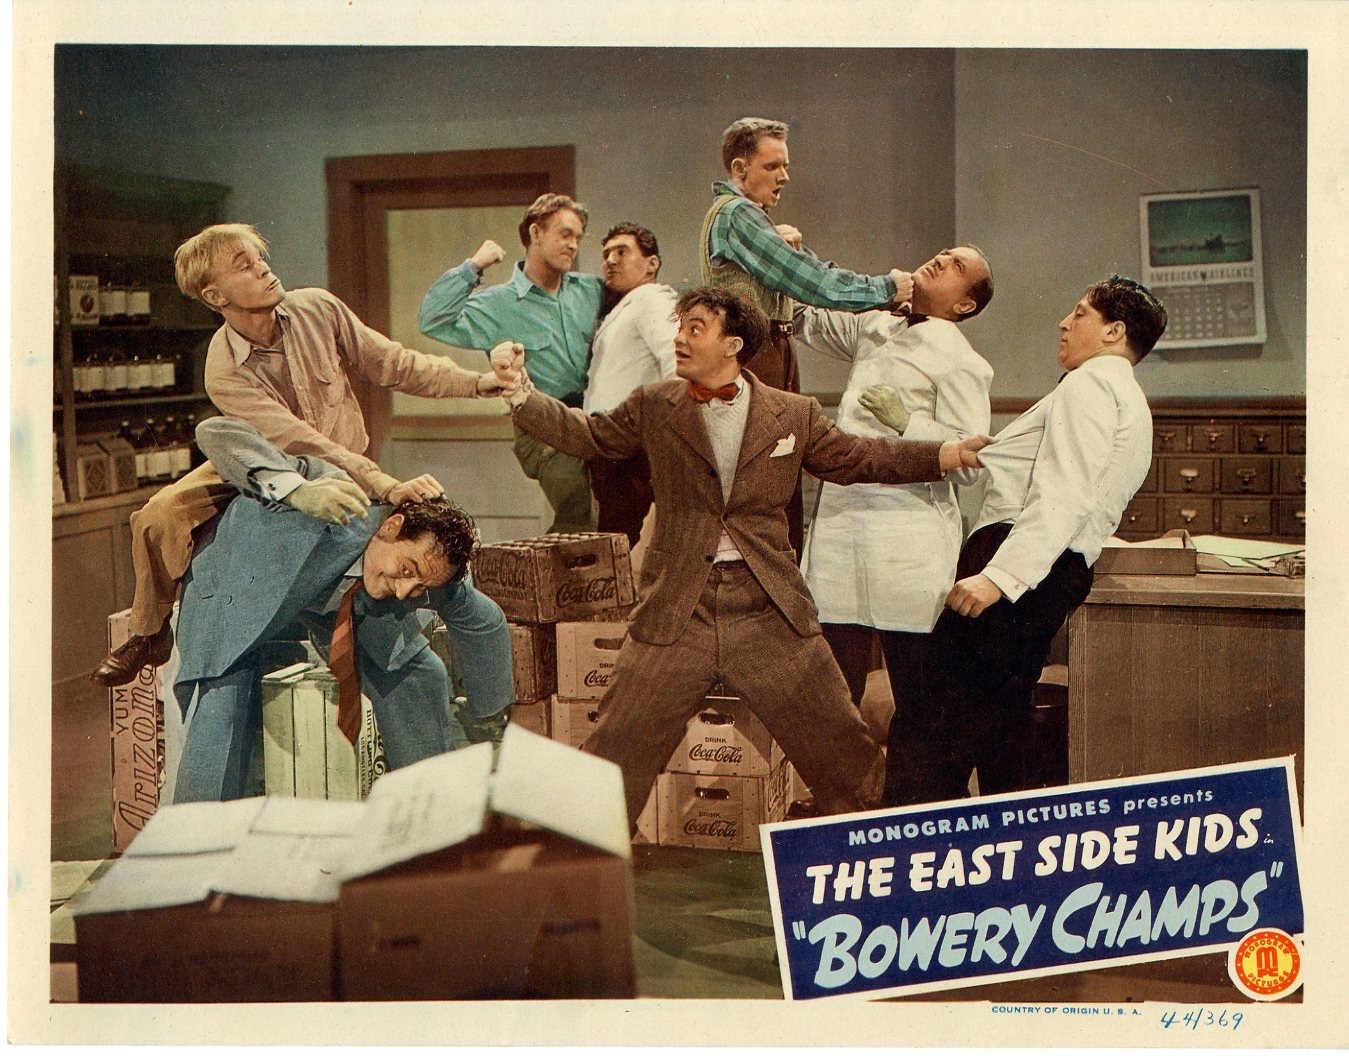 Bowery Champs  1944  8 Lobby Card Set - 145